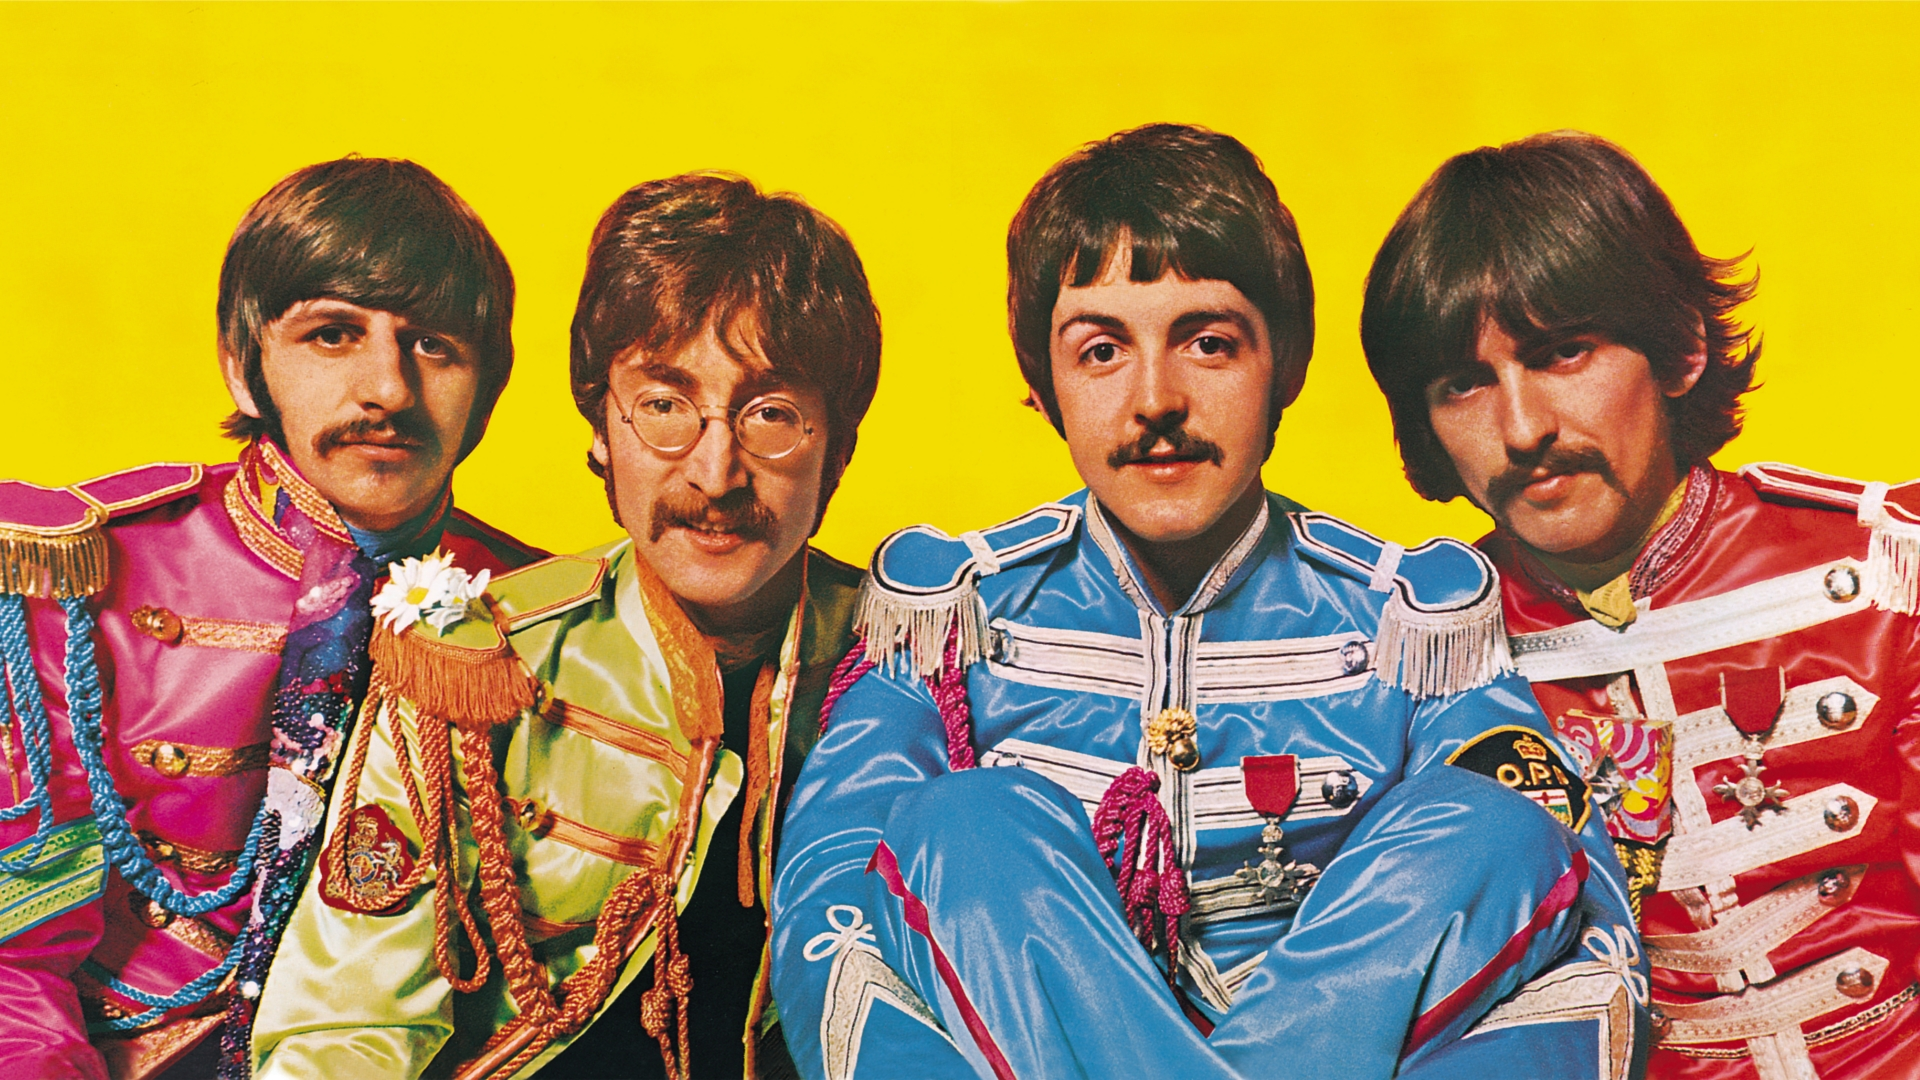 Hope you like this wallpaper as much as we do! The Beatles